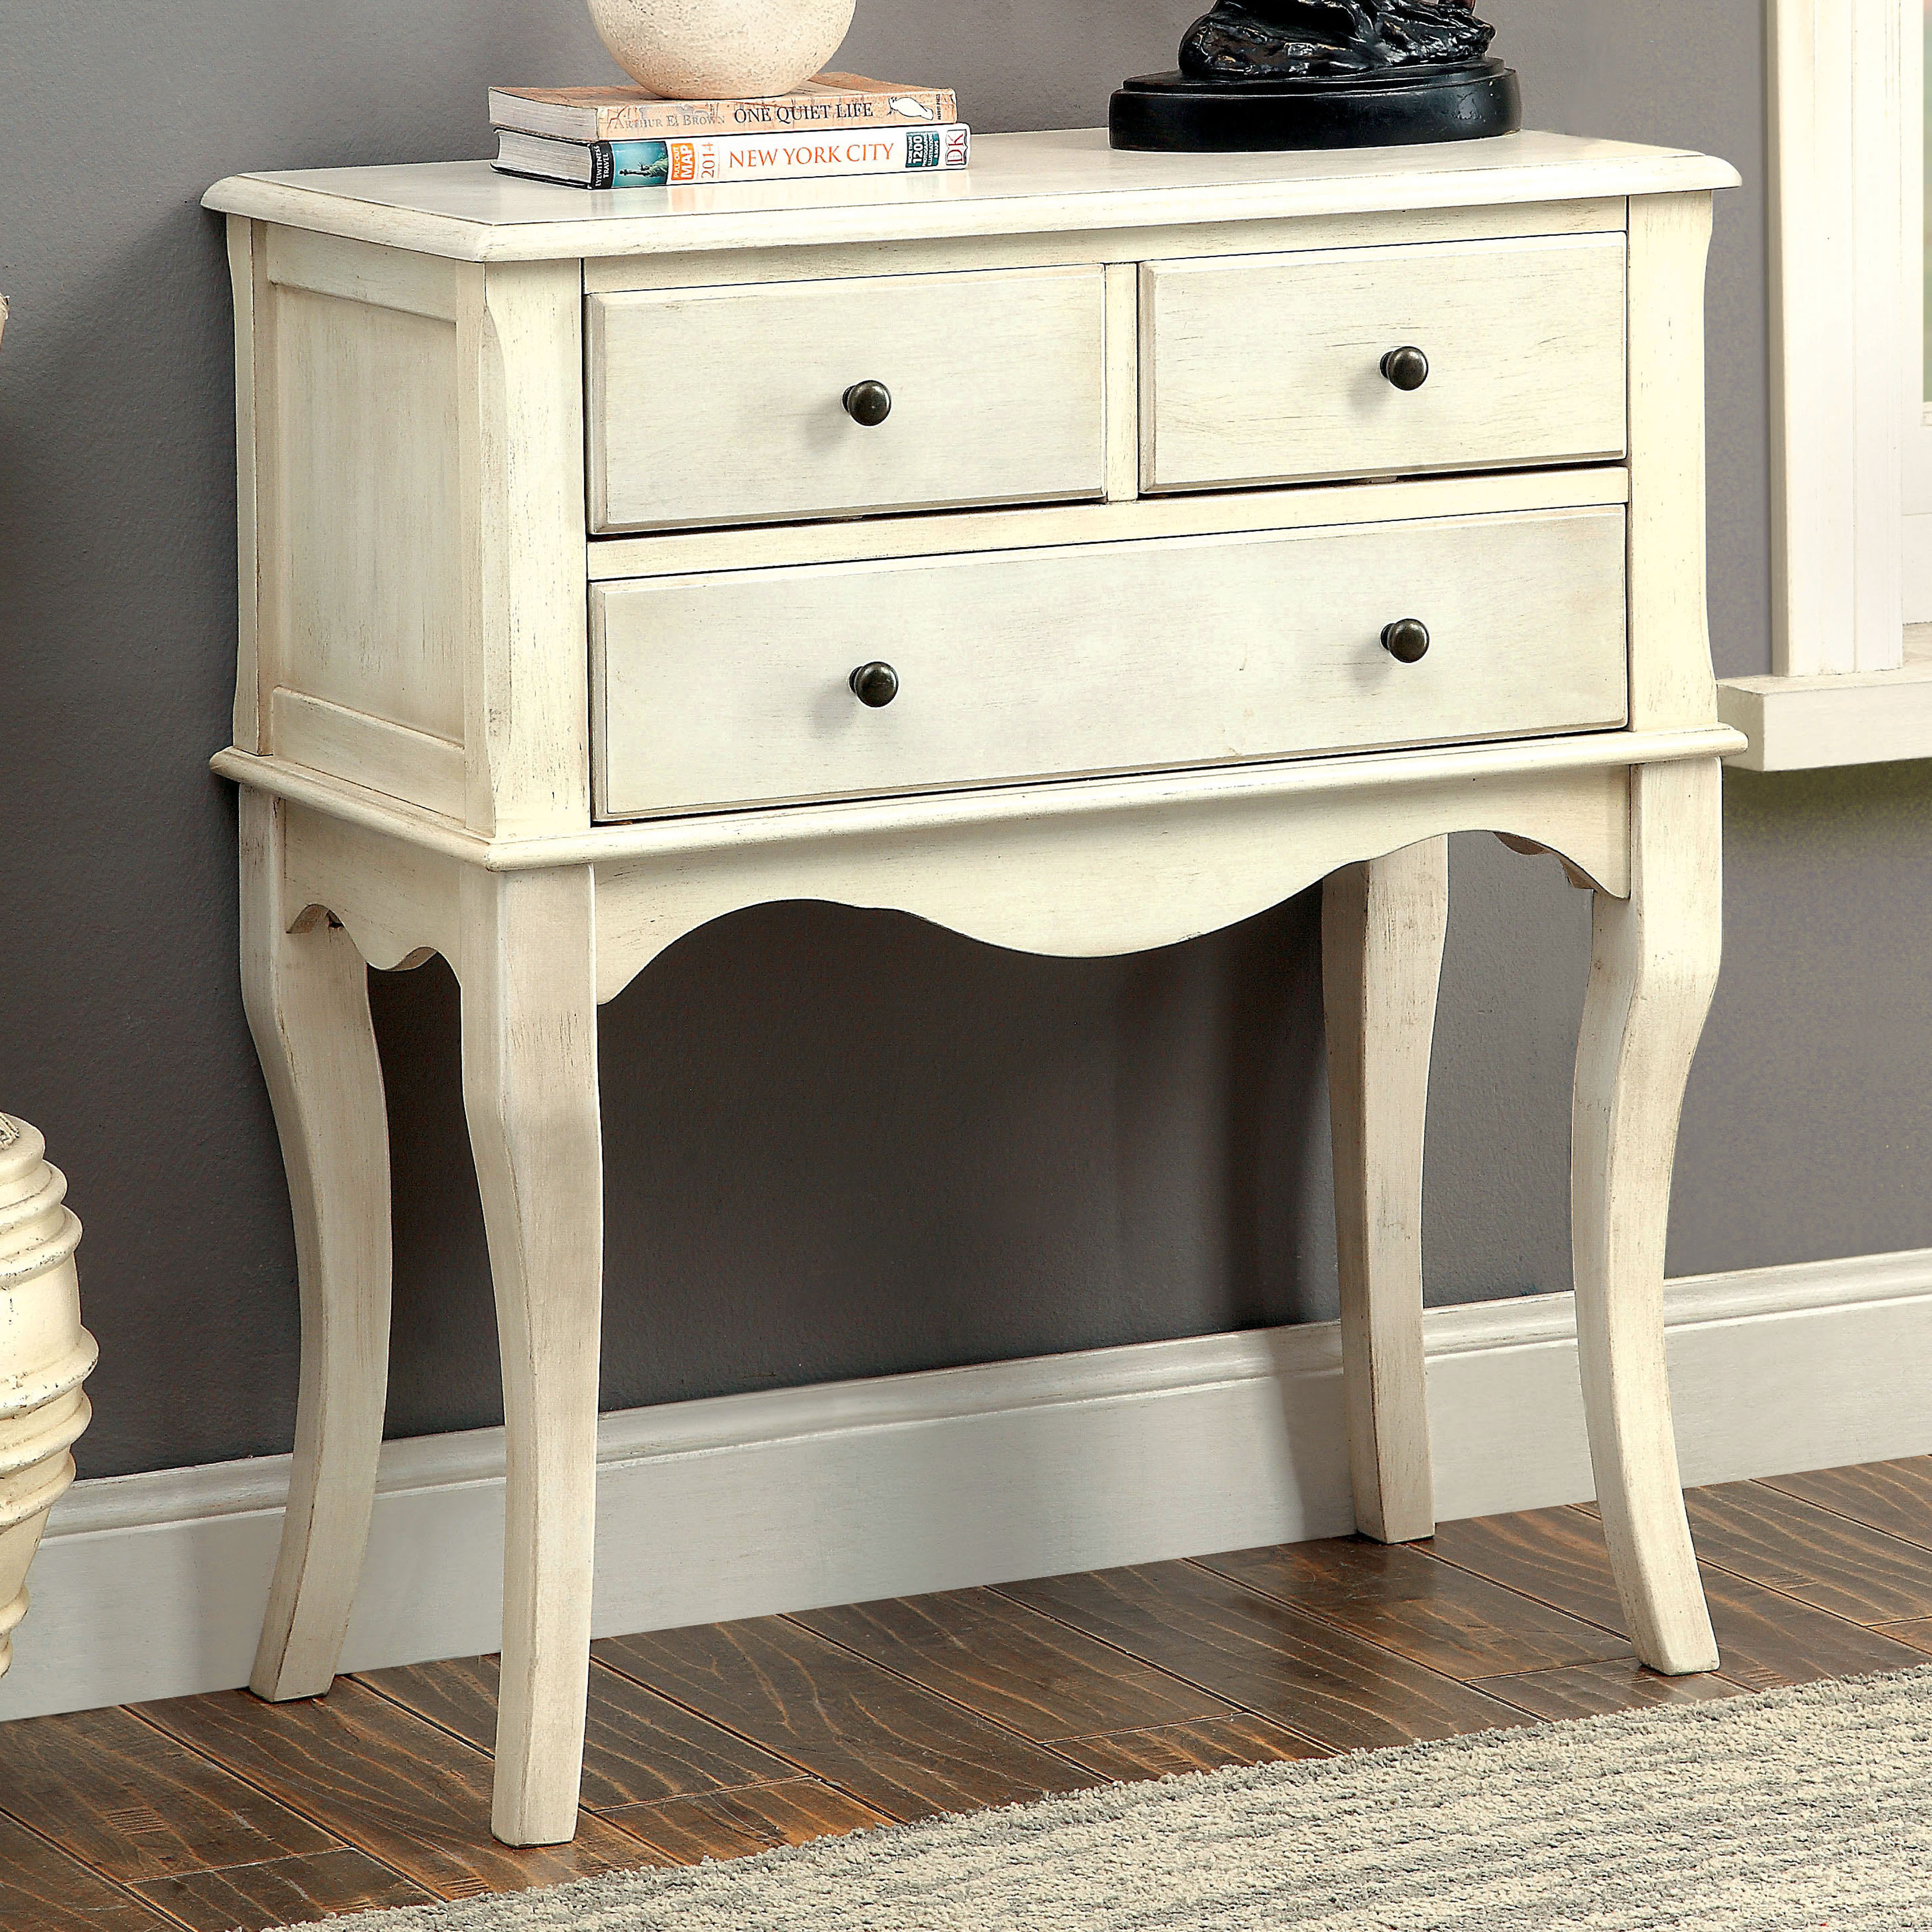 Furniture of America Eloisa Vintage Style 3drawer Hallway Table